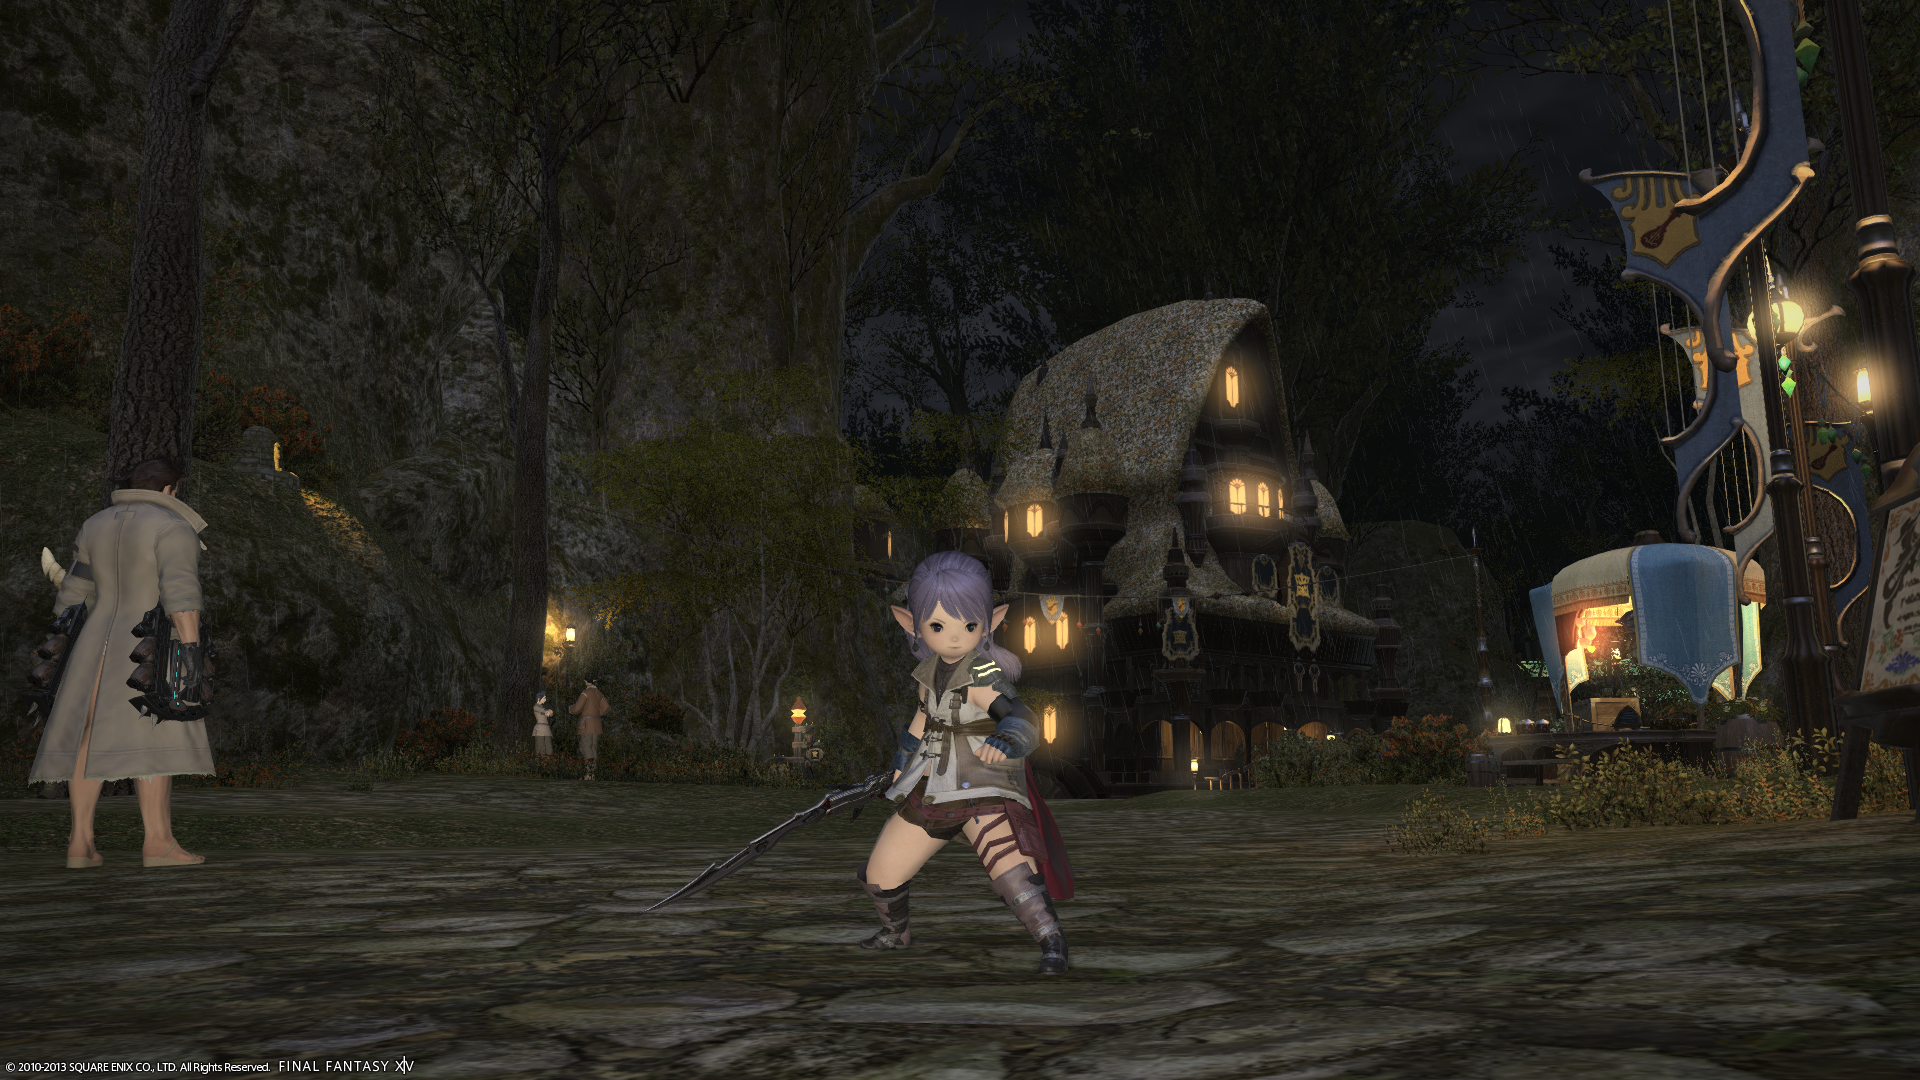 ratatapa ffxiv edit needs anyone cant hair stuff coord found guide 11122013 horizon after friend lightning gives told